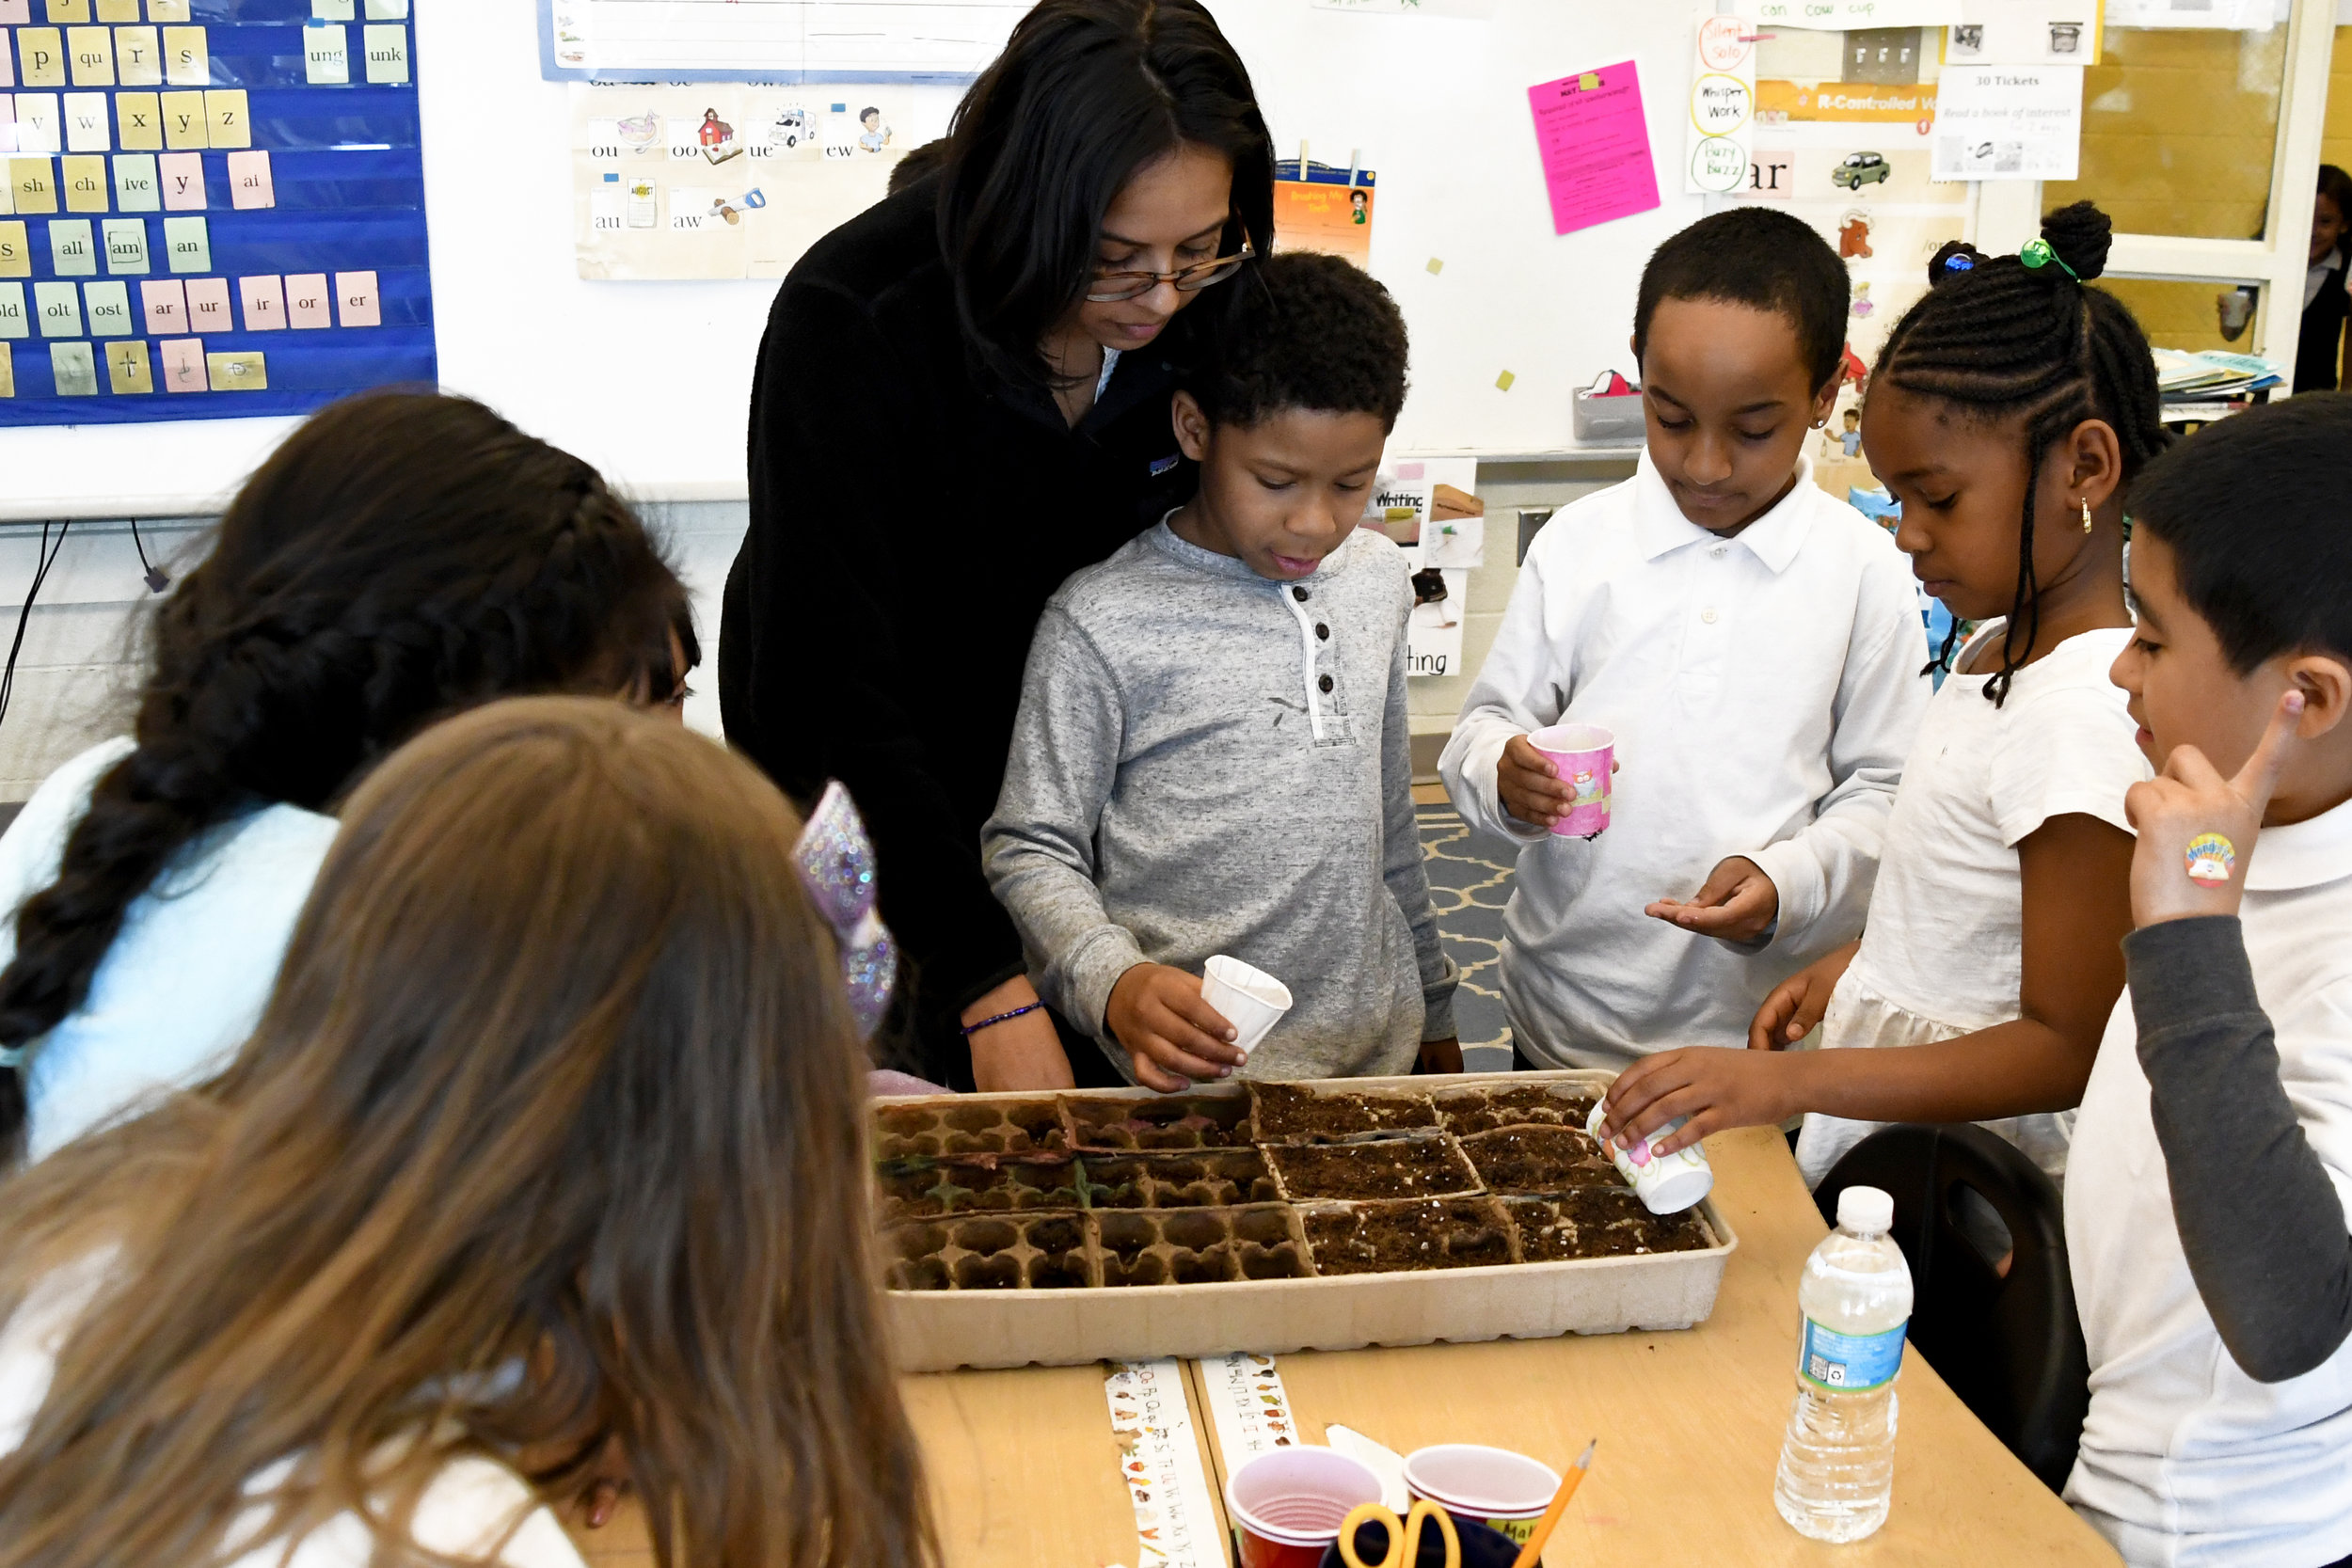 Students water their newly-planted flowers at Seaton Elementary with the help of Nikhita Jain.